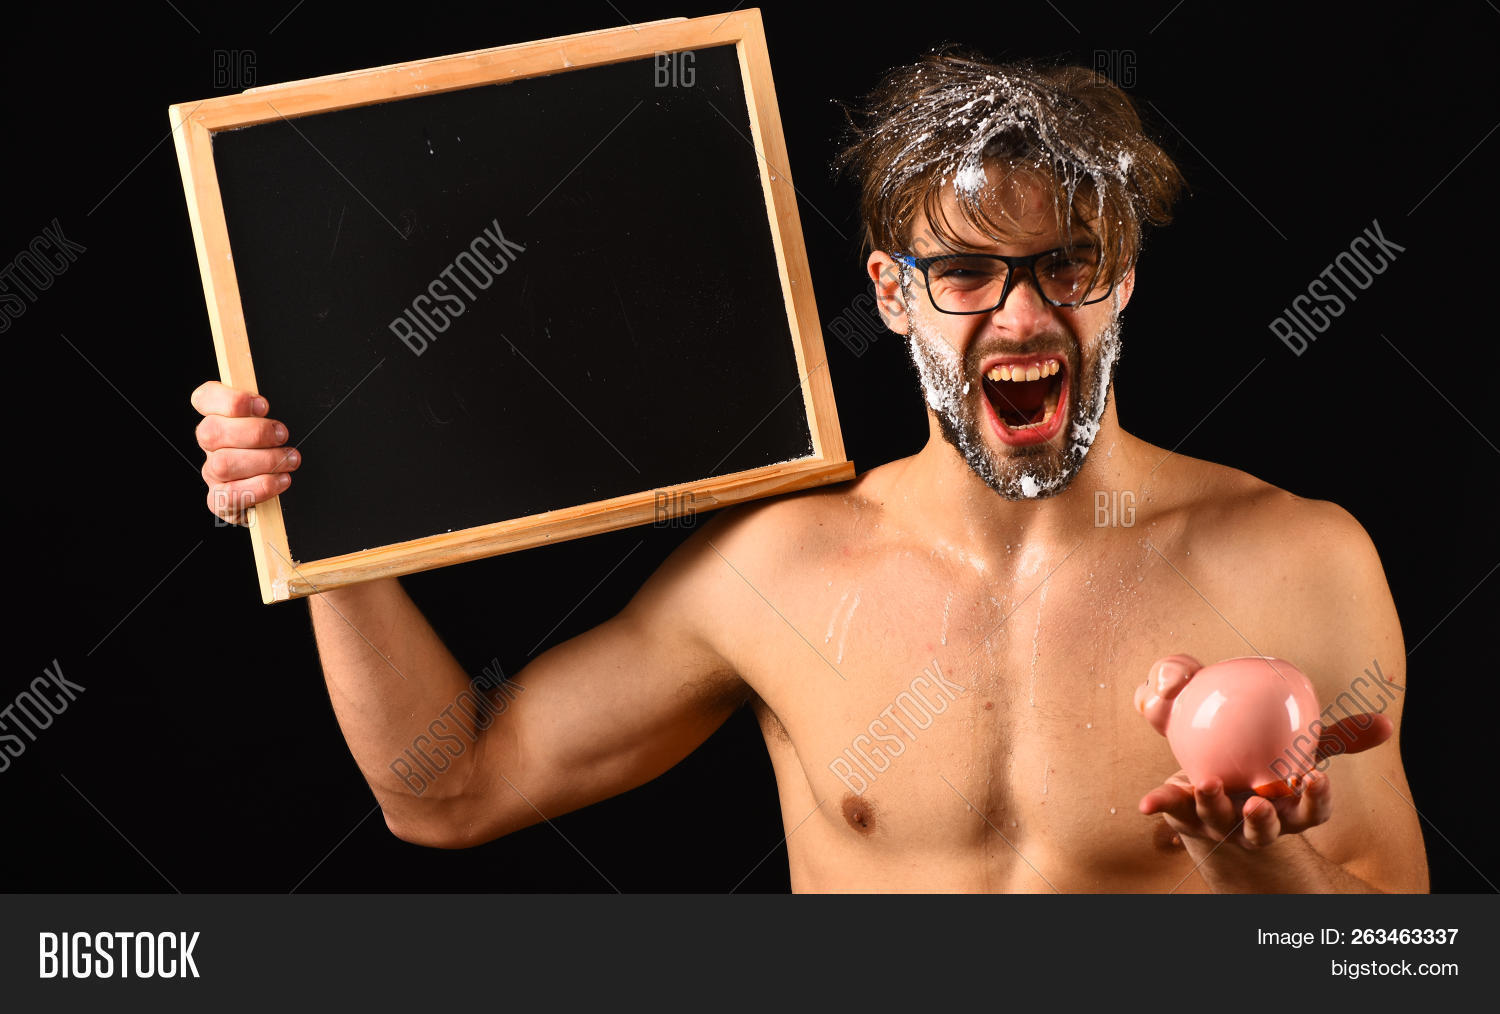 Men body show naked accept. opinion